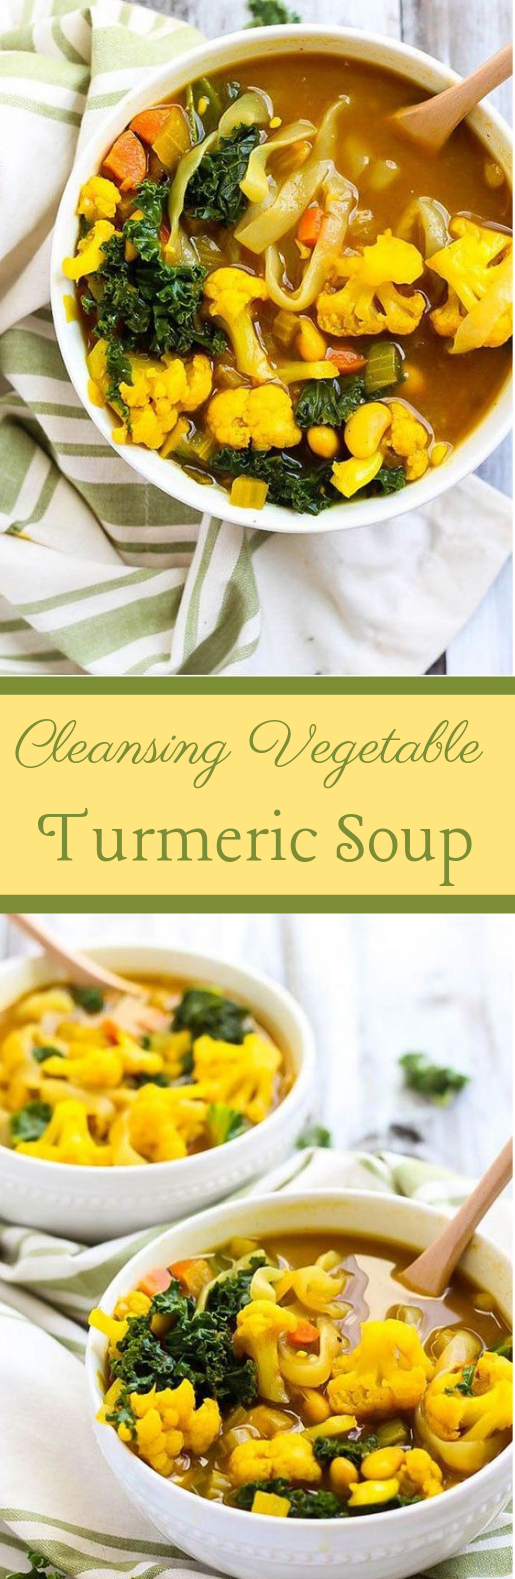 CLEANSING VEGETABLE TURMERIC SOUP